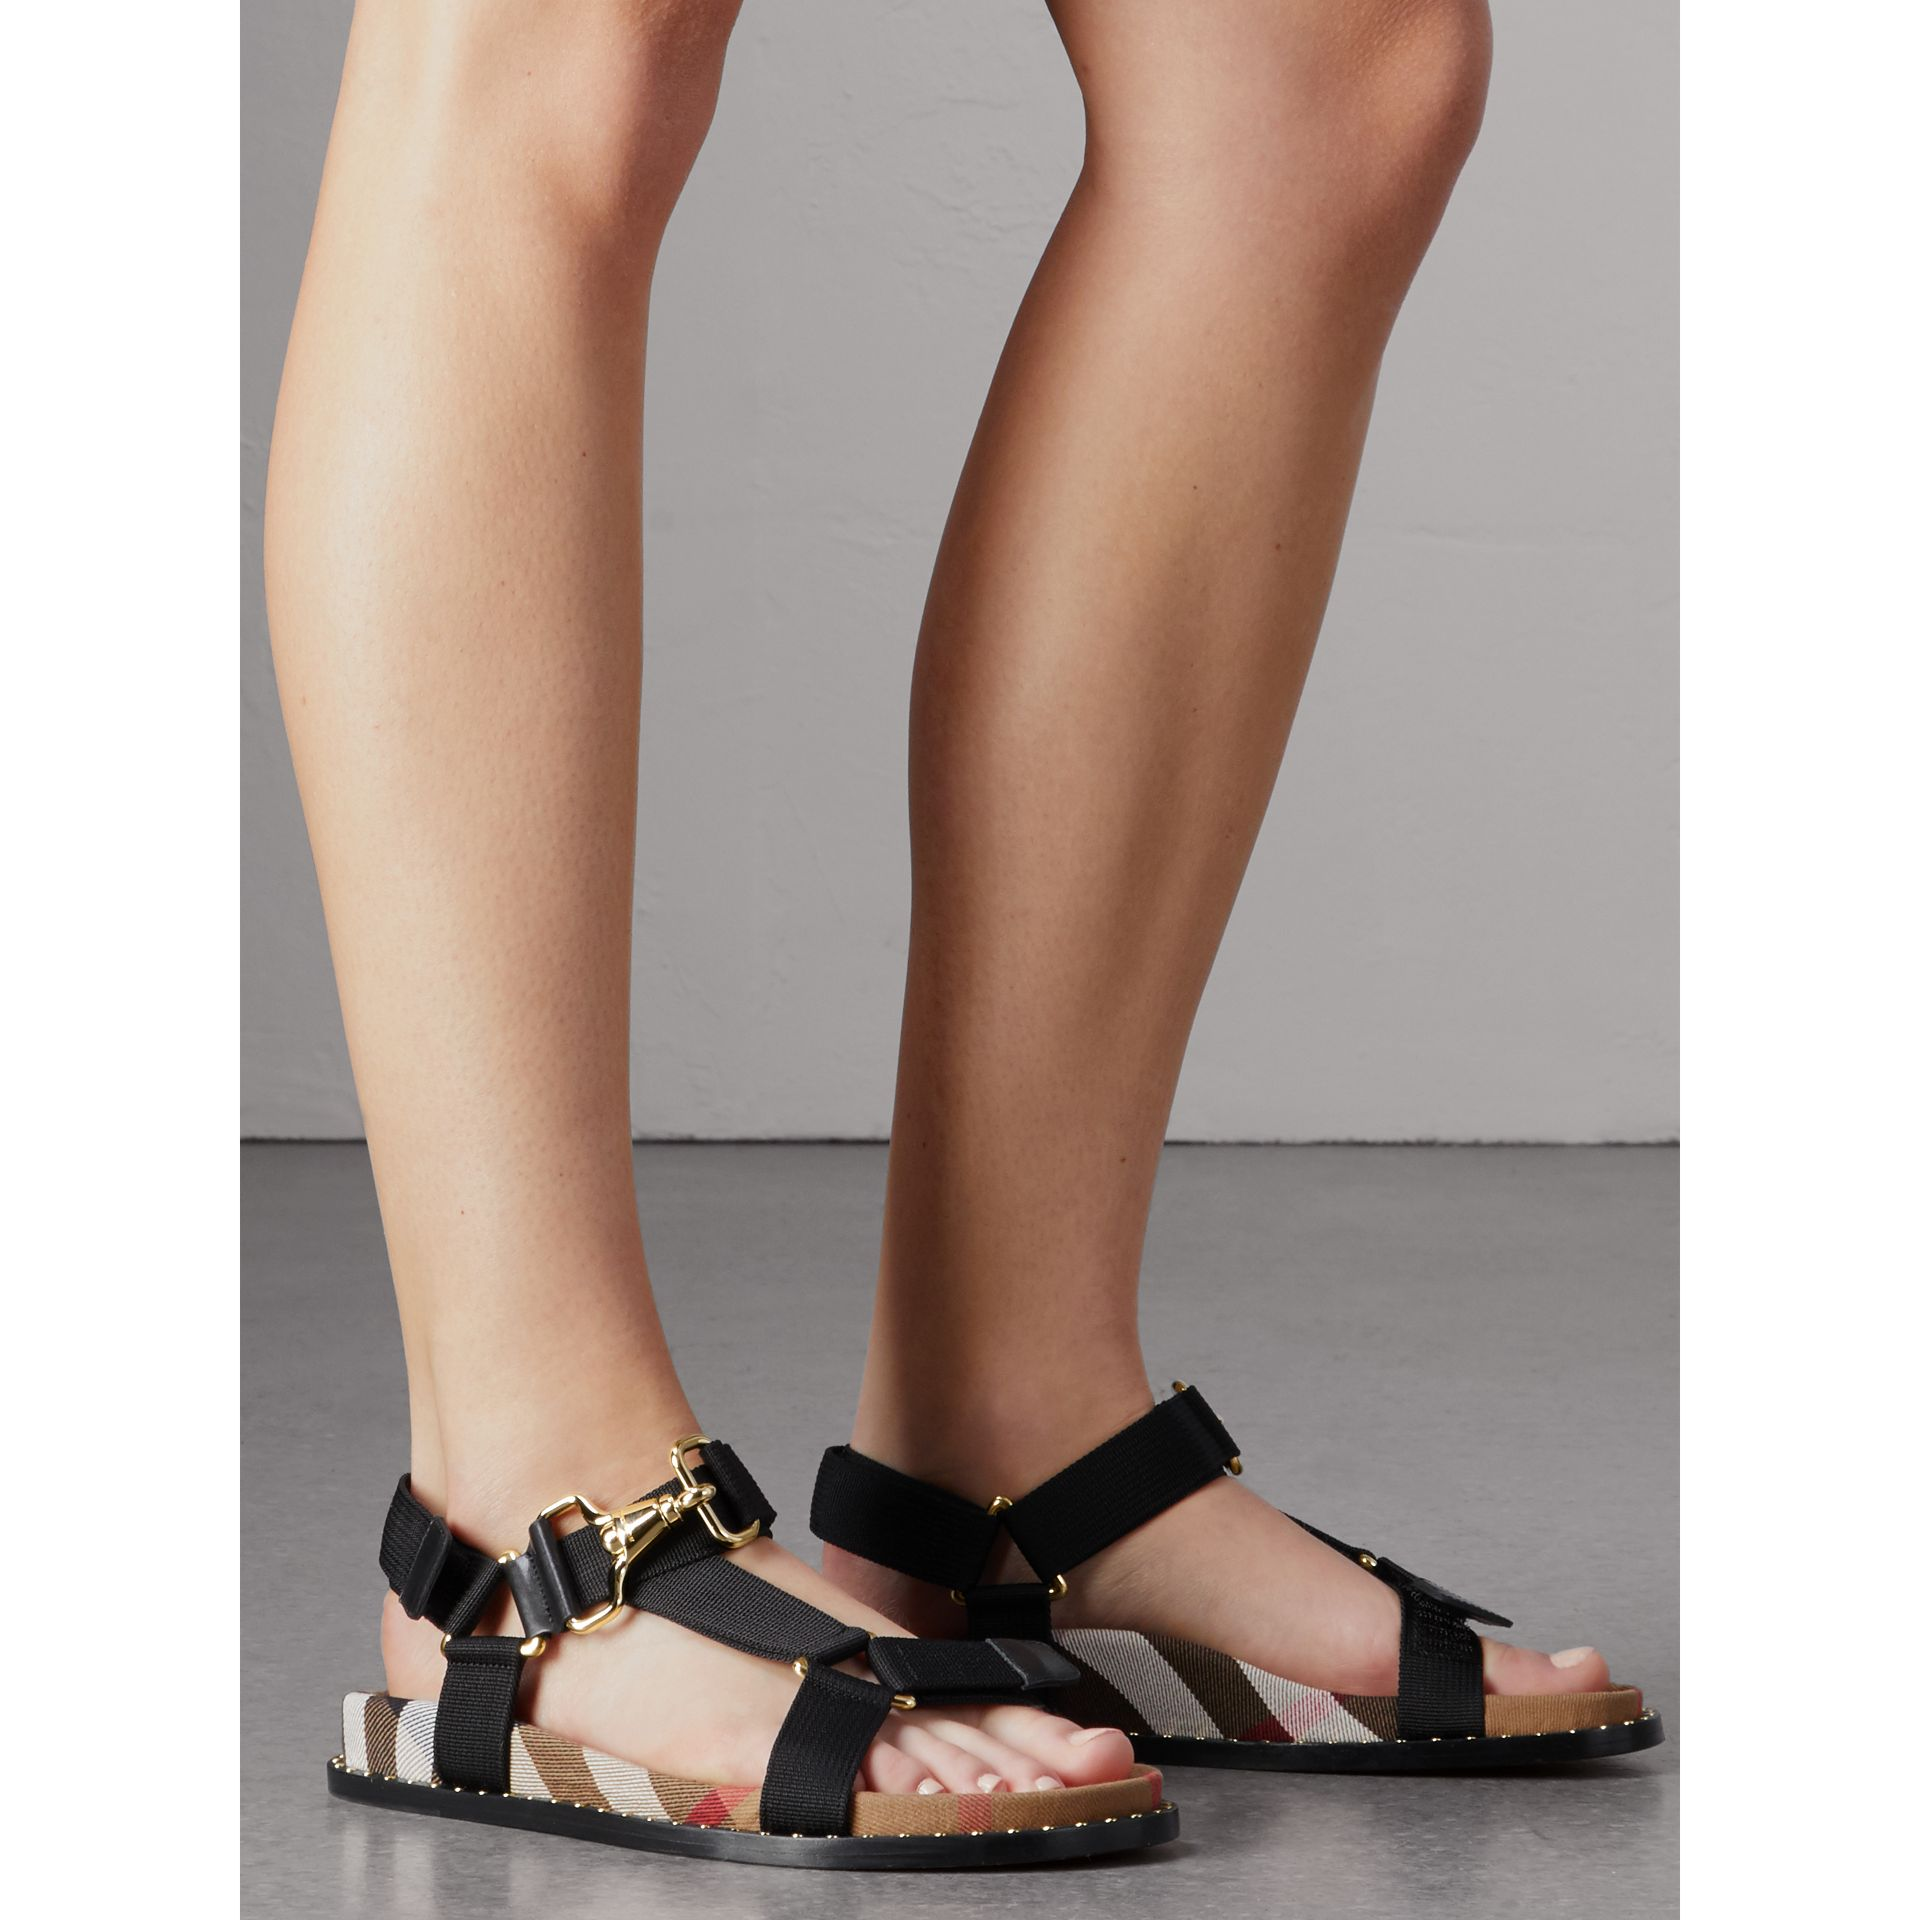 House Check Strappy Sandals with Hardware Detail in Black - Women | Burberry United States - gallery image 3